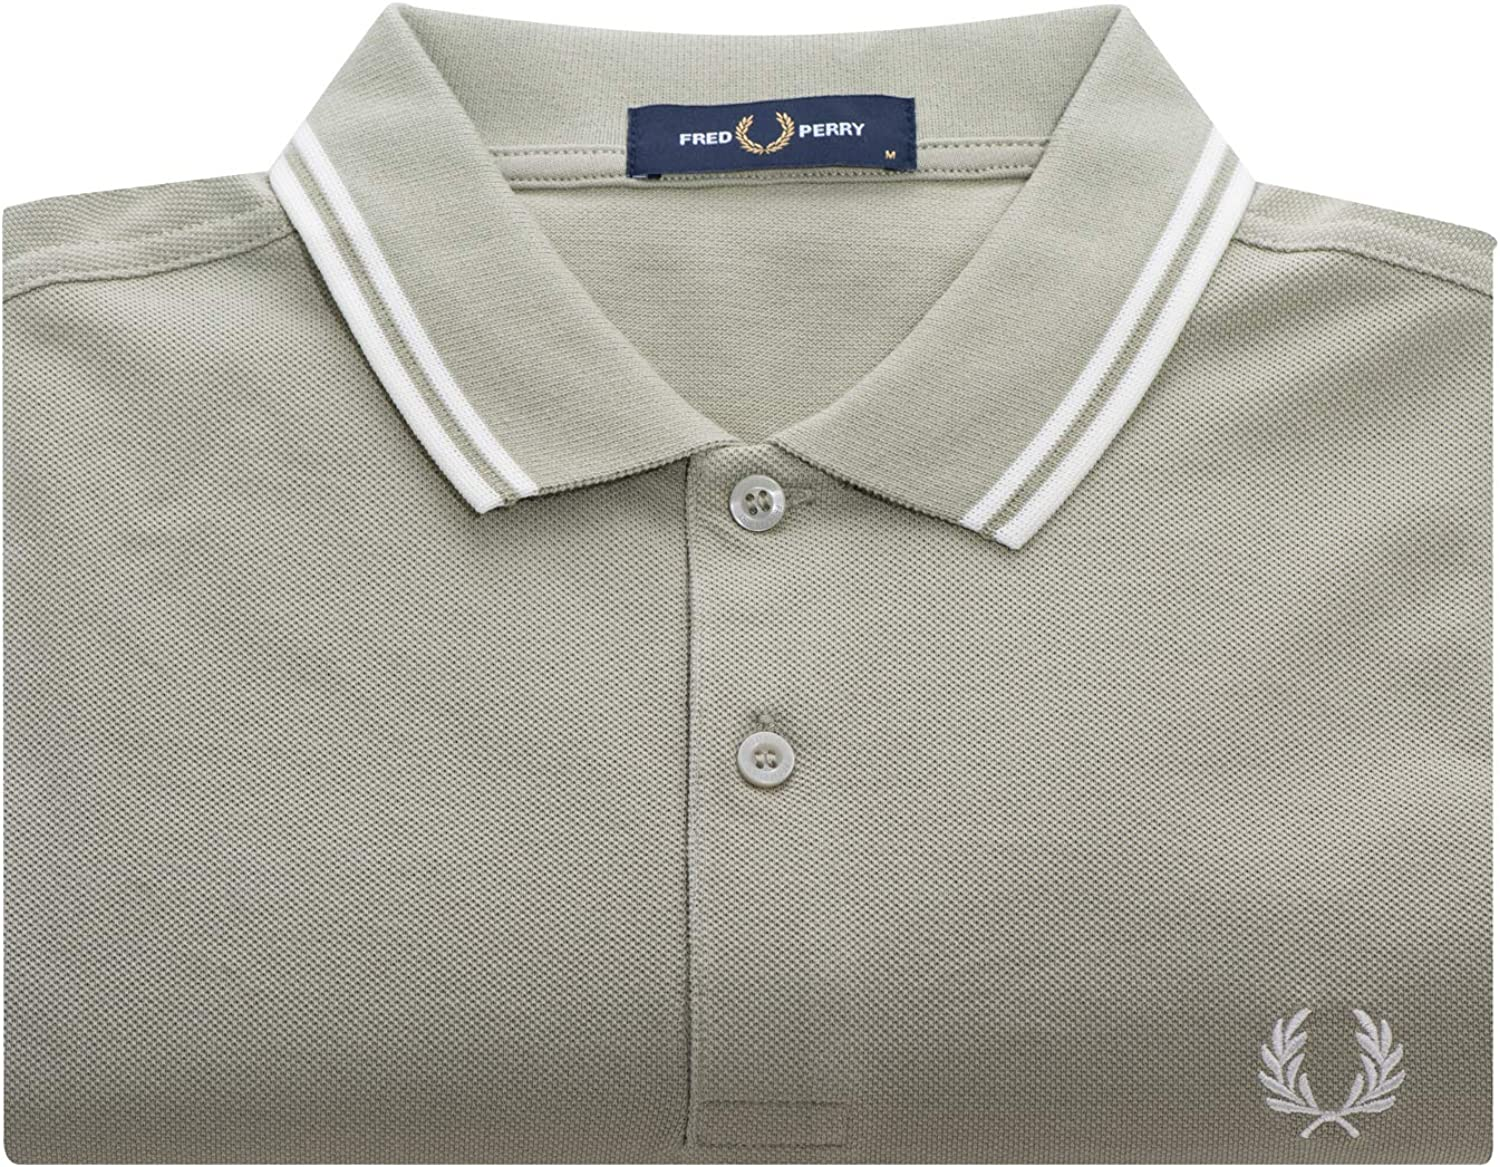 Fred Perry Twin Tripped Shirt Maillot de Tennis Homme Vert clair - blanc